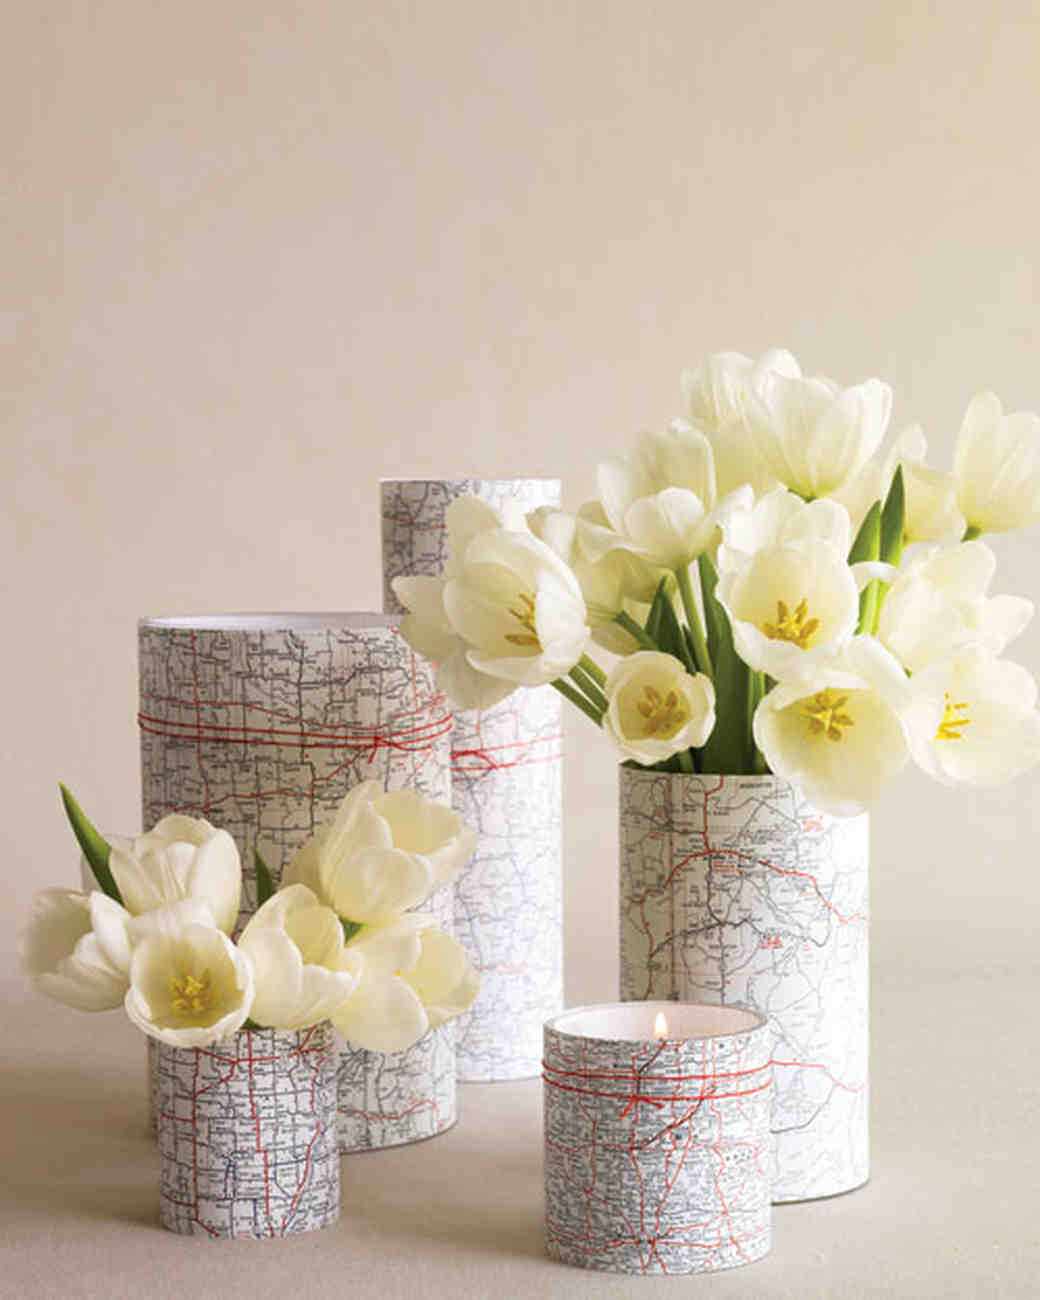 Map-Printed Vases